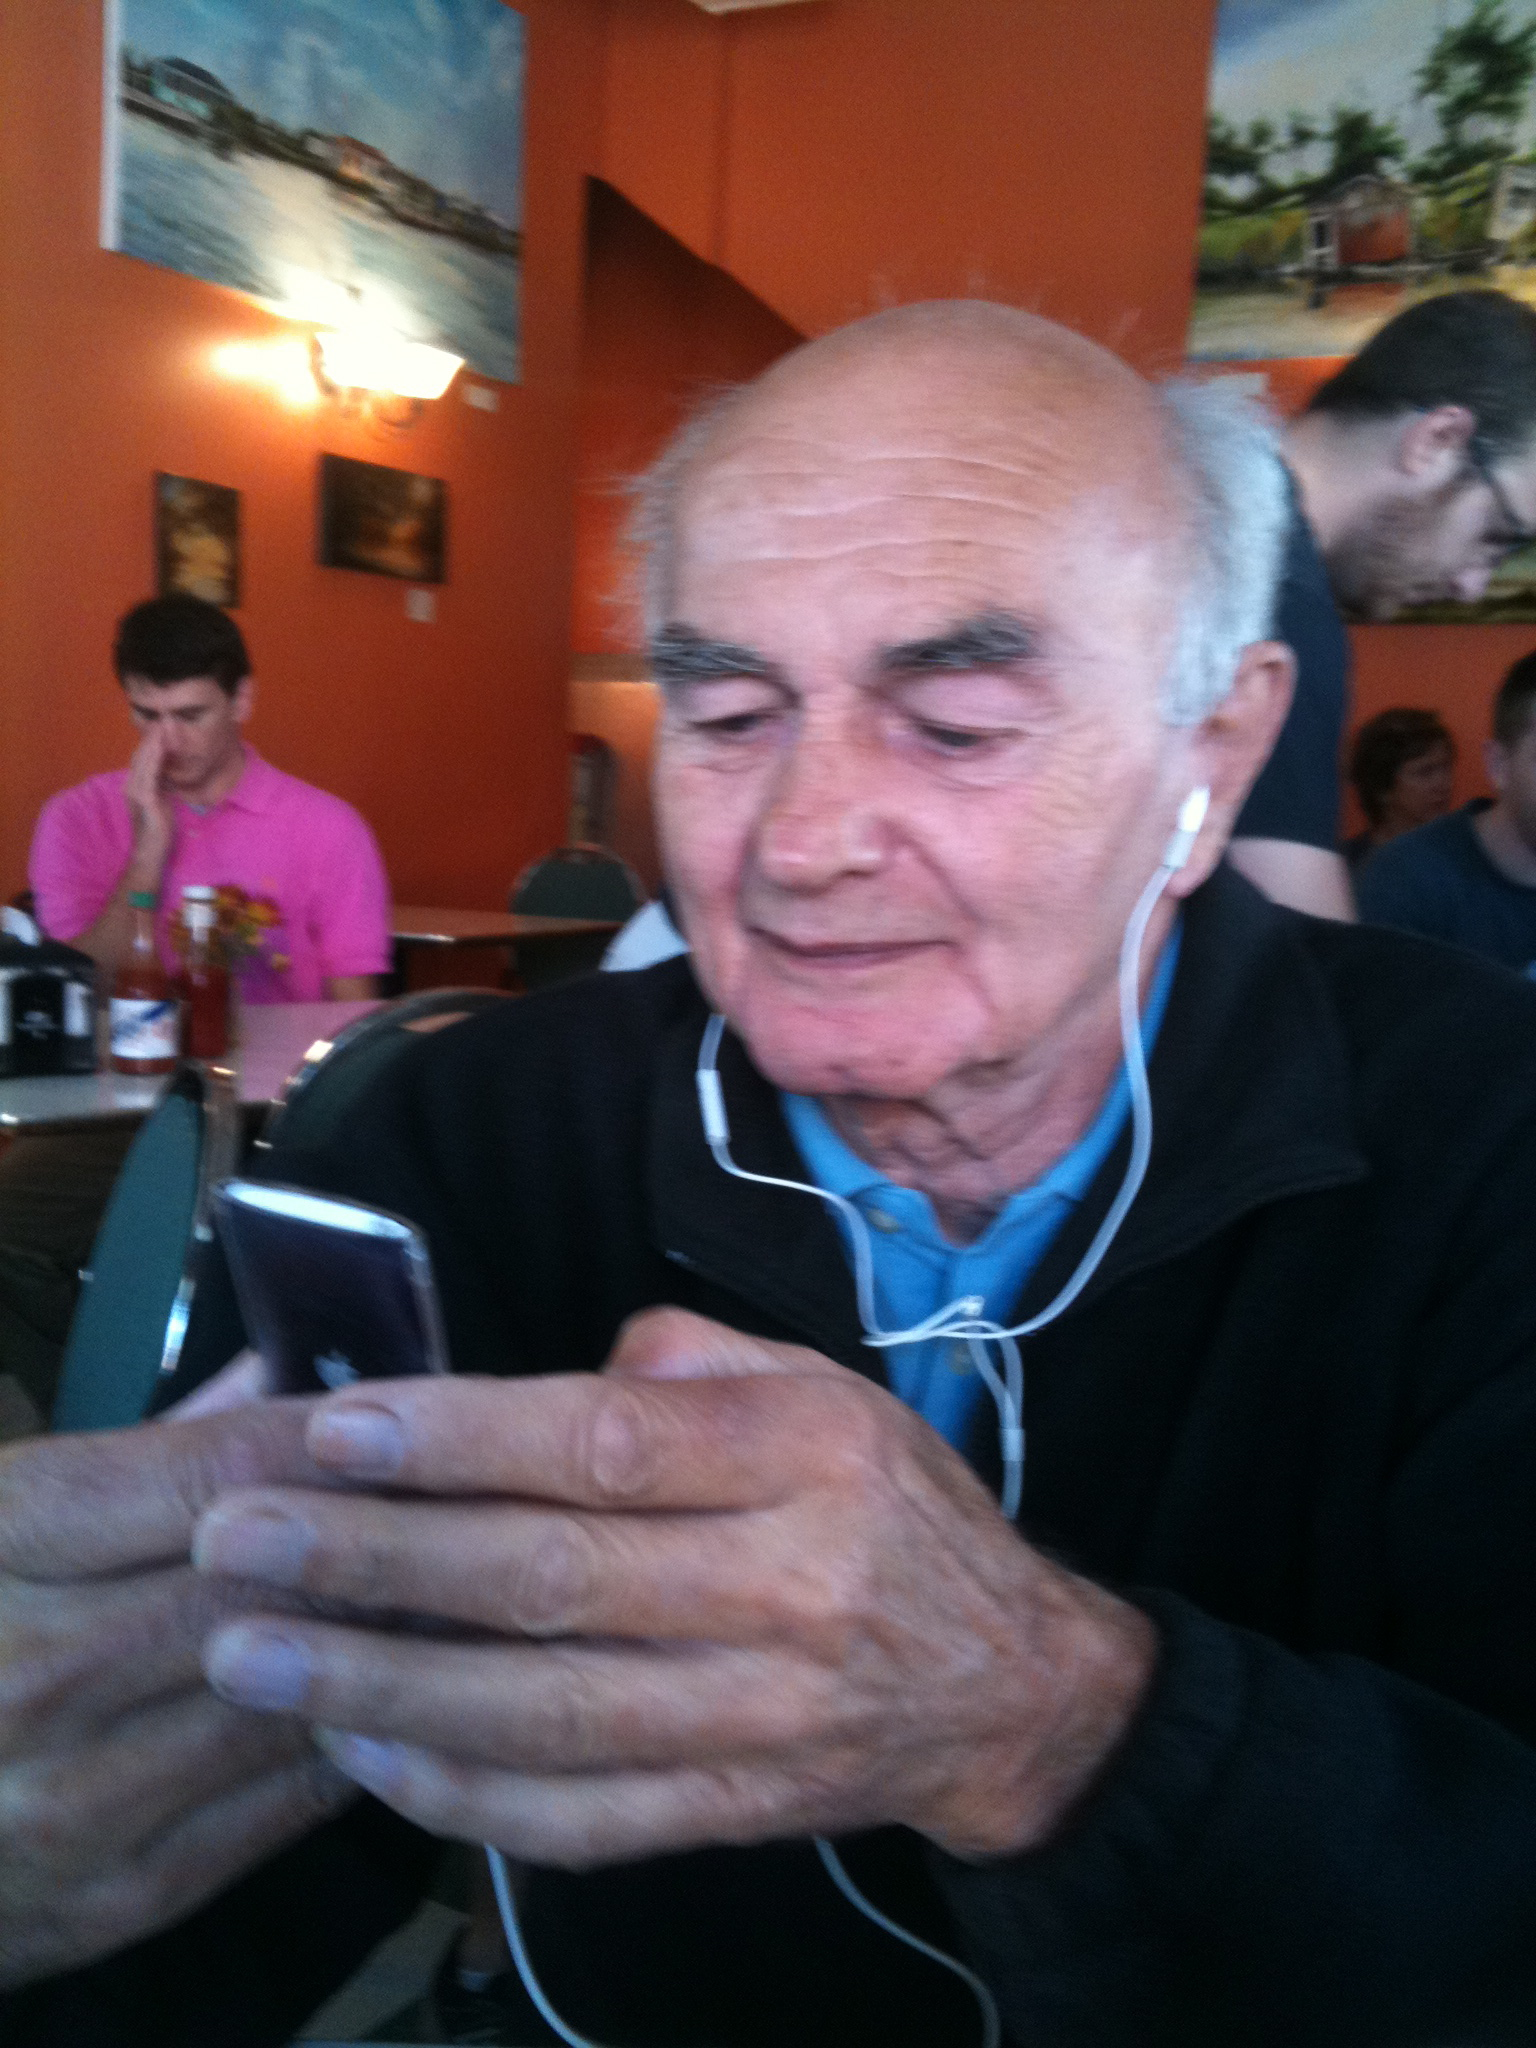 Tom Stagg experimenting with an iPod.